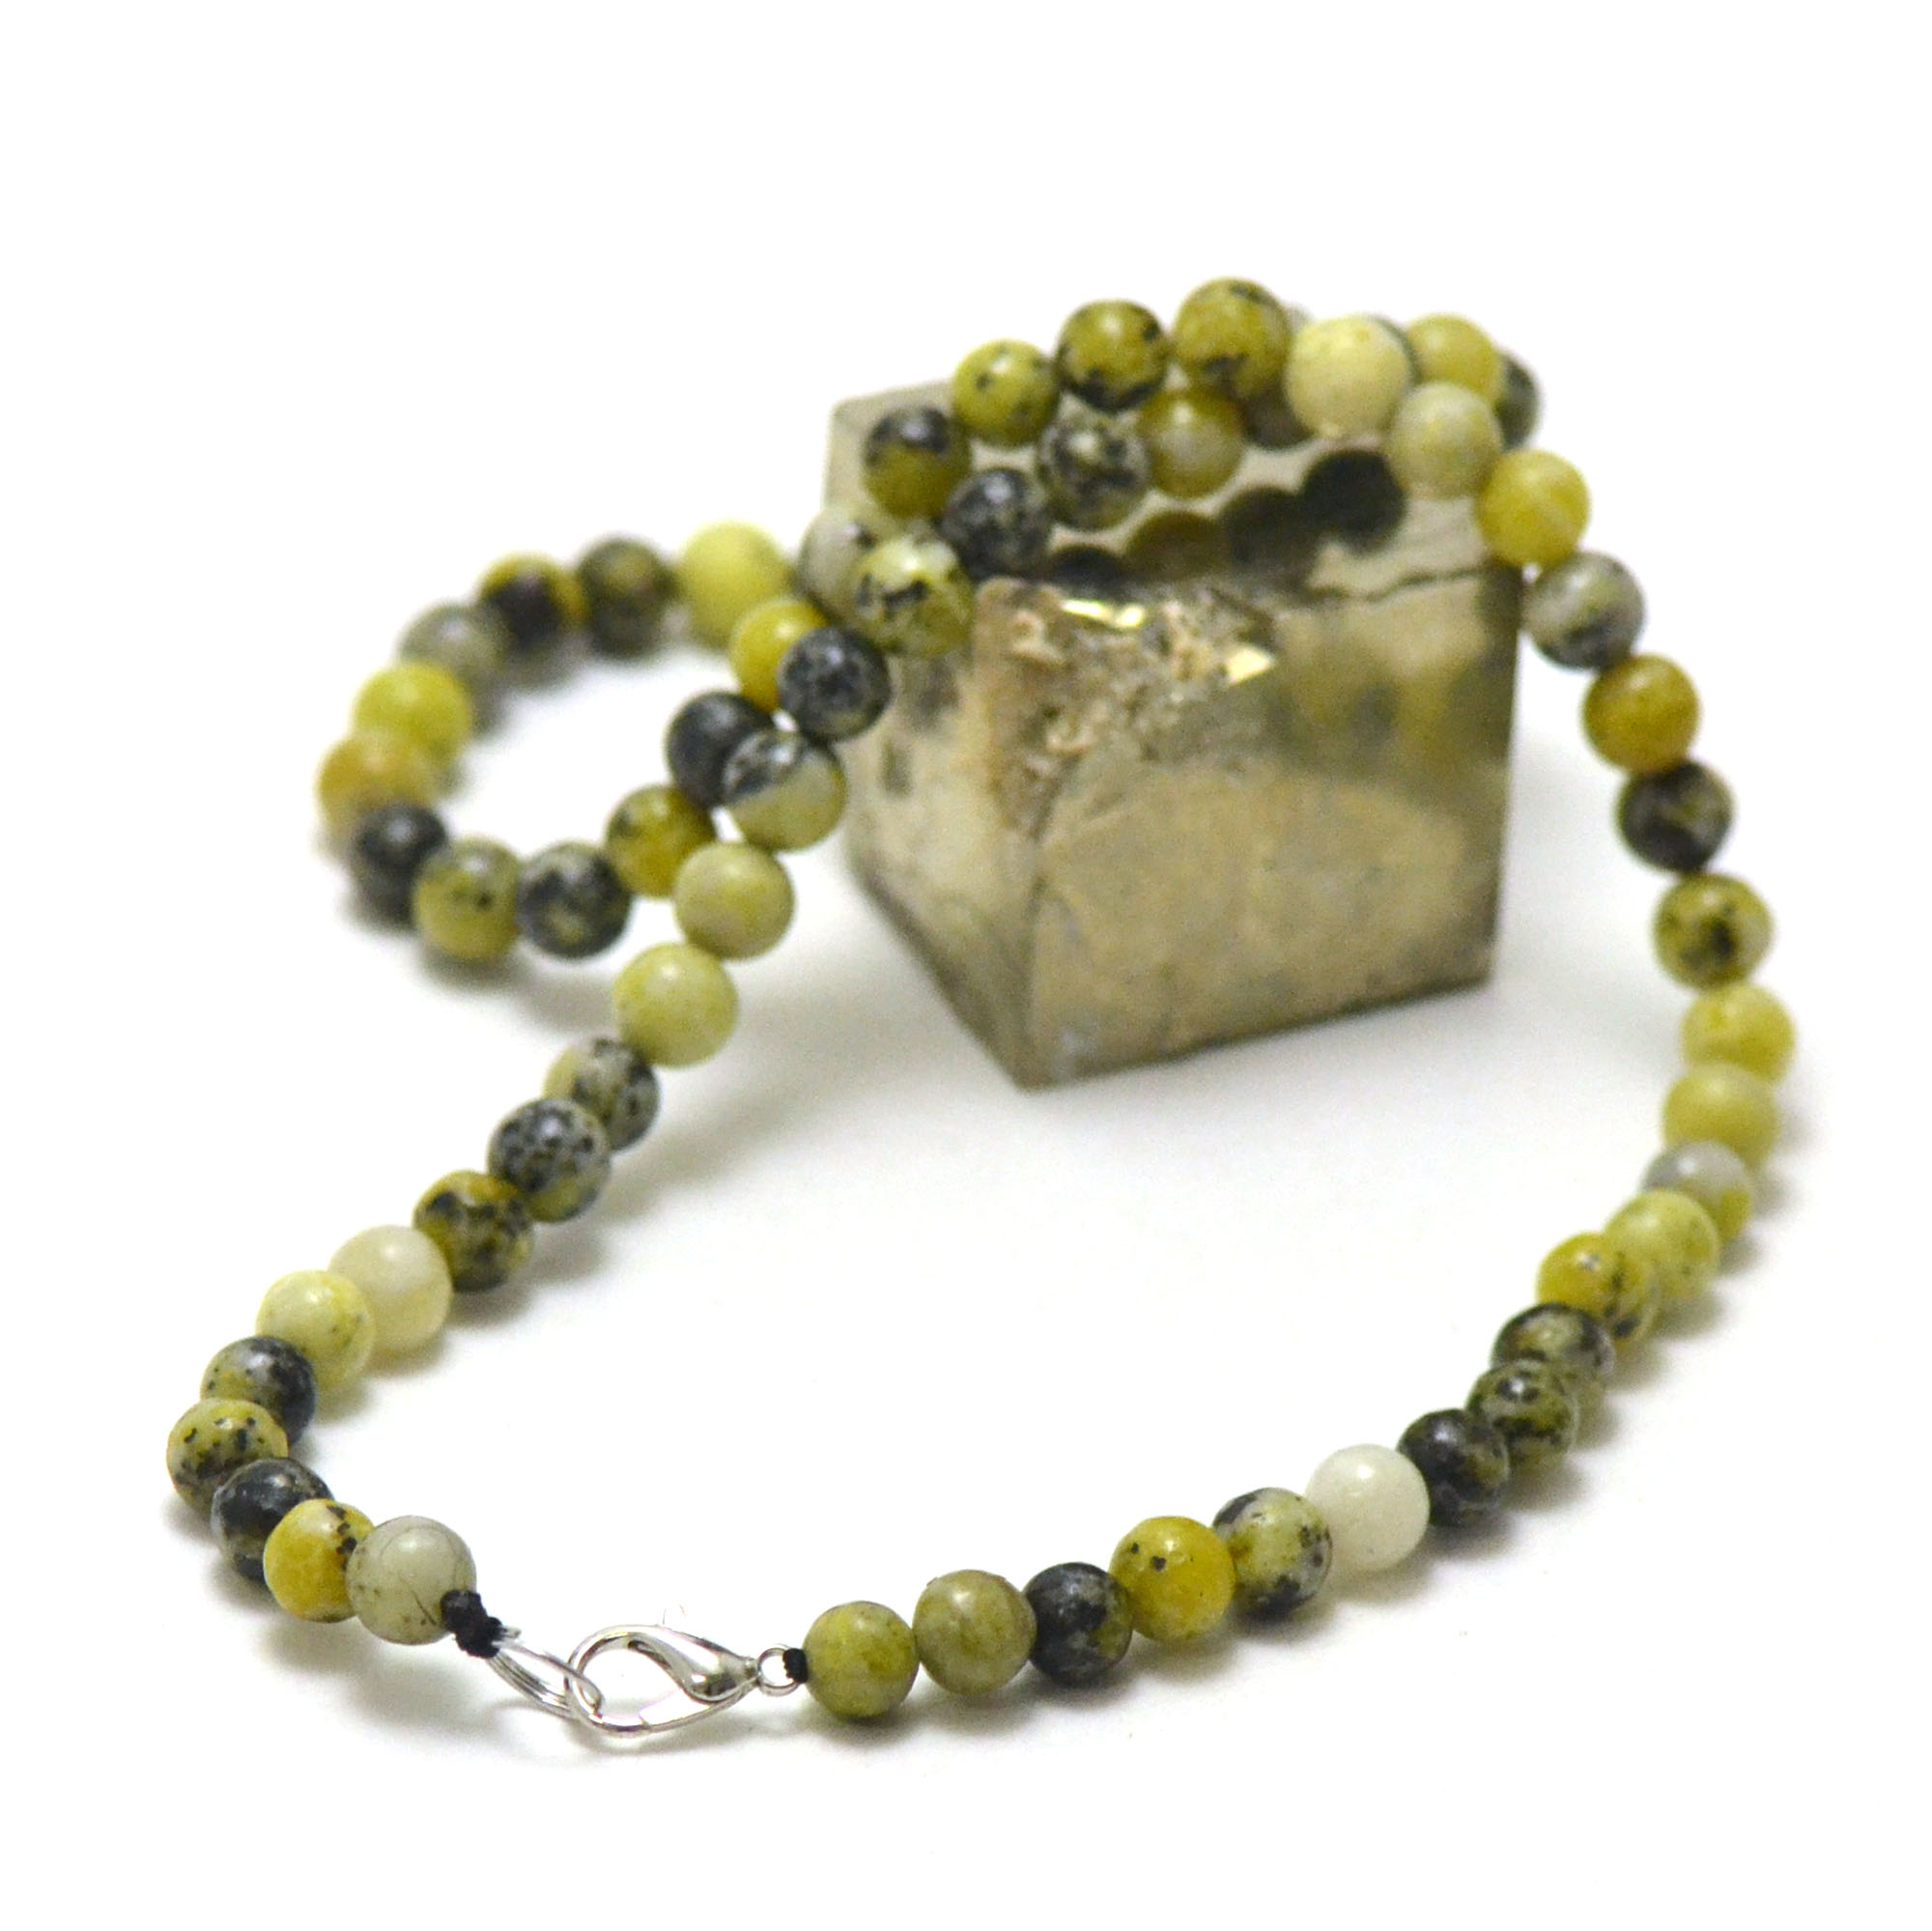 collier chrysoprase citron ronde 6 mm , pierre naturelle